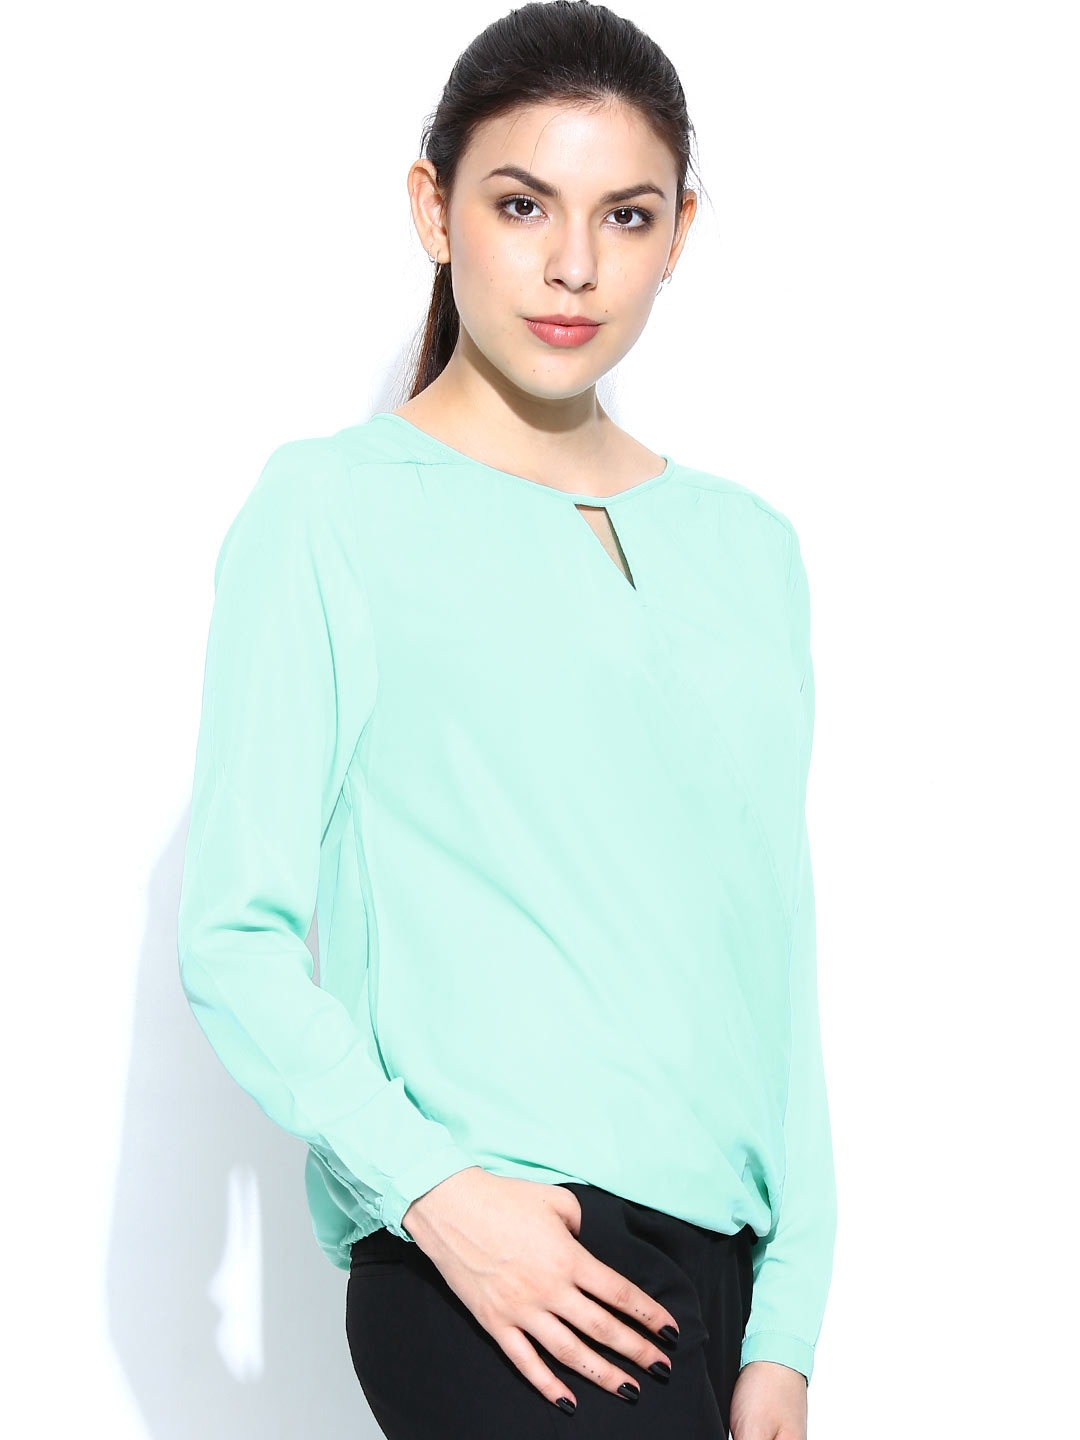 You searched for: mint green top! Etsy is the home to thousands of handmade, vintage, and one-of-a-kind products and gifts related to your search. No matter what you're looking for or where you are in the world, our global marketplace of sellers can help you find unique and affordable options. Let's get started!